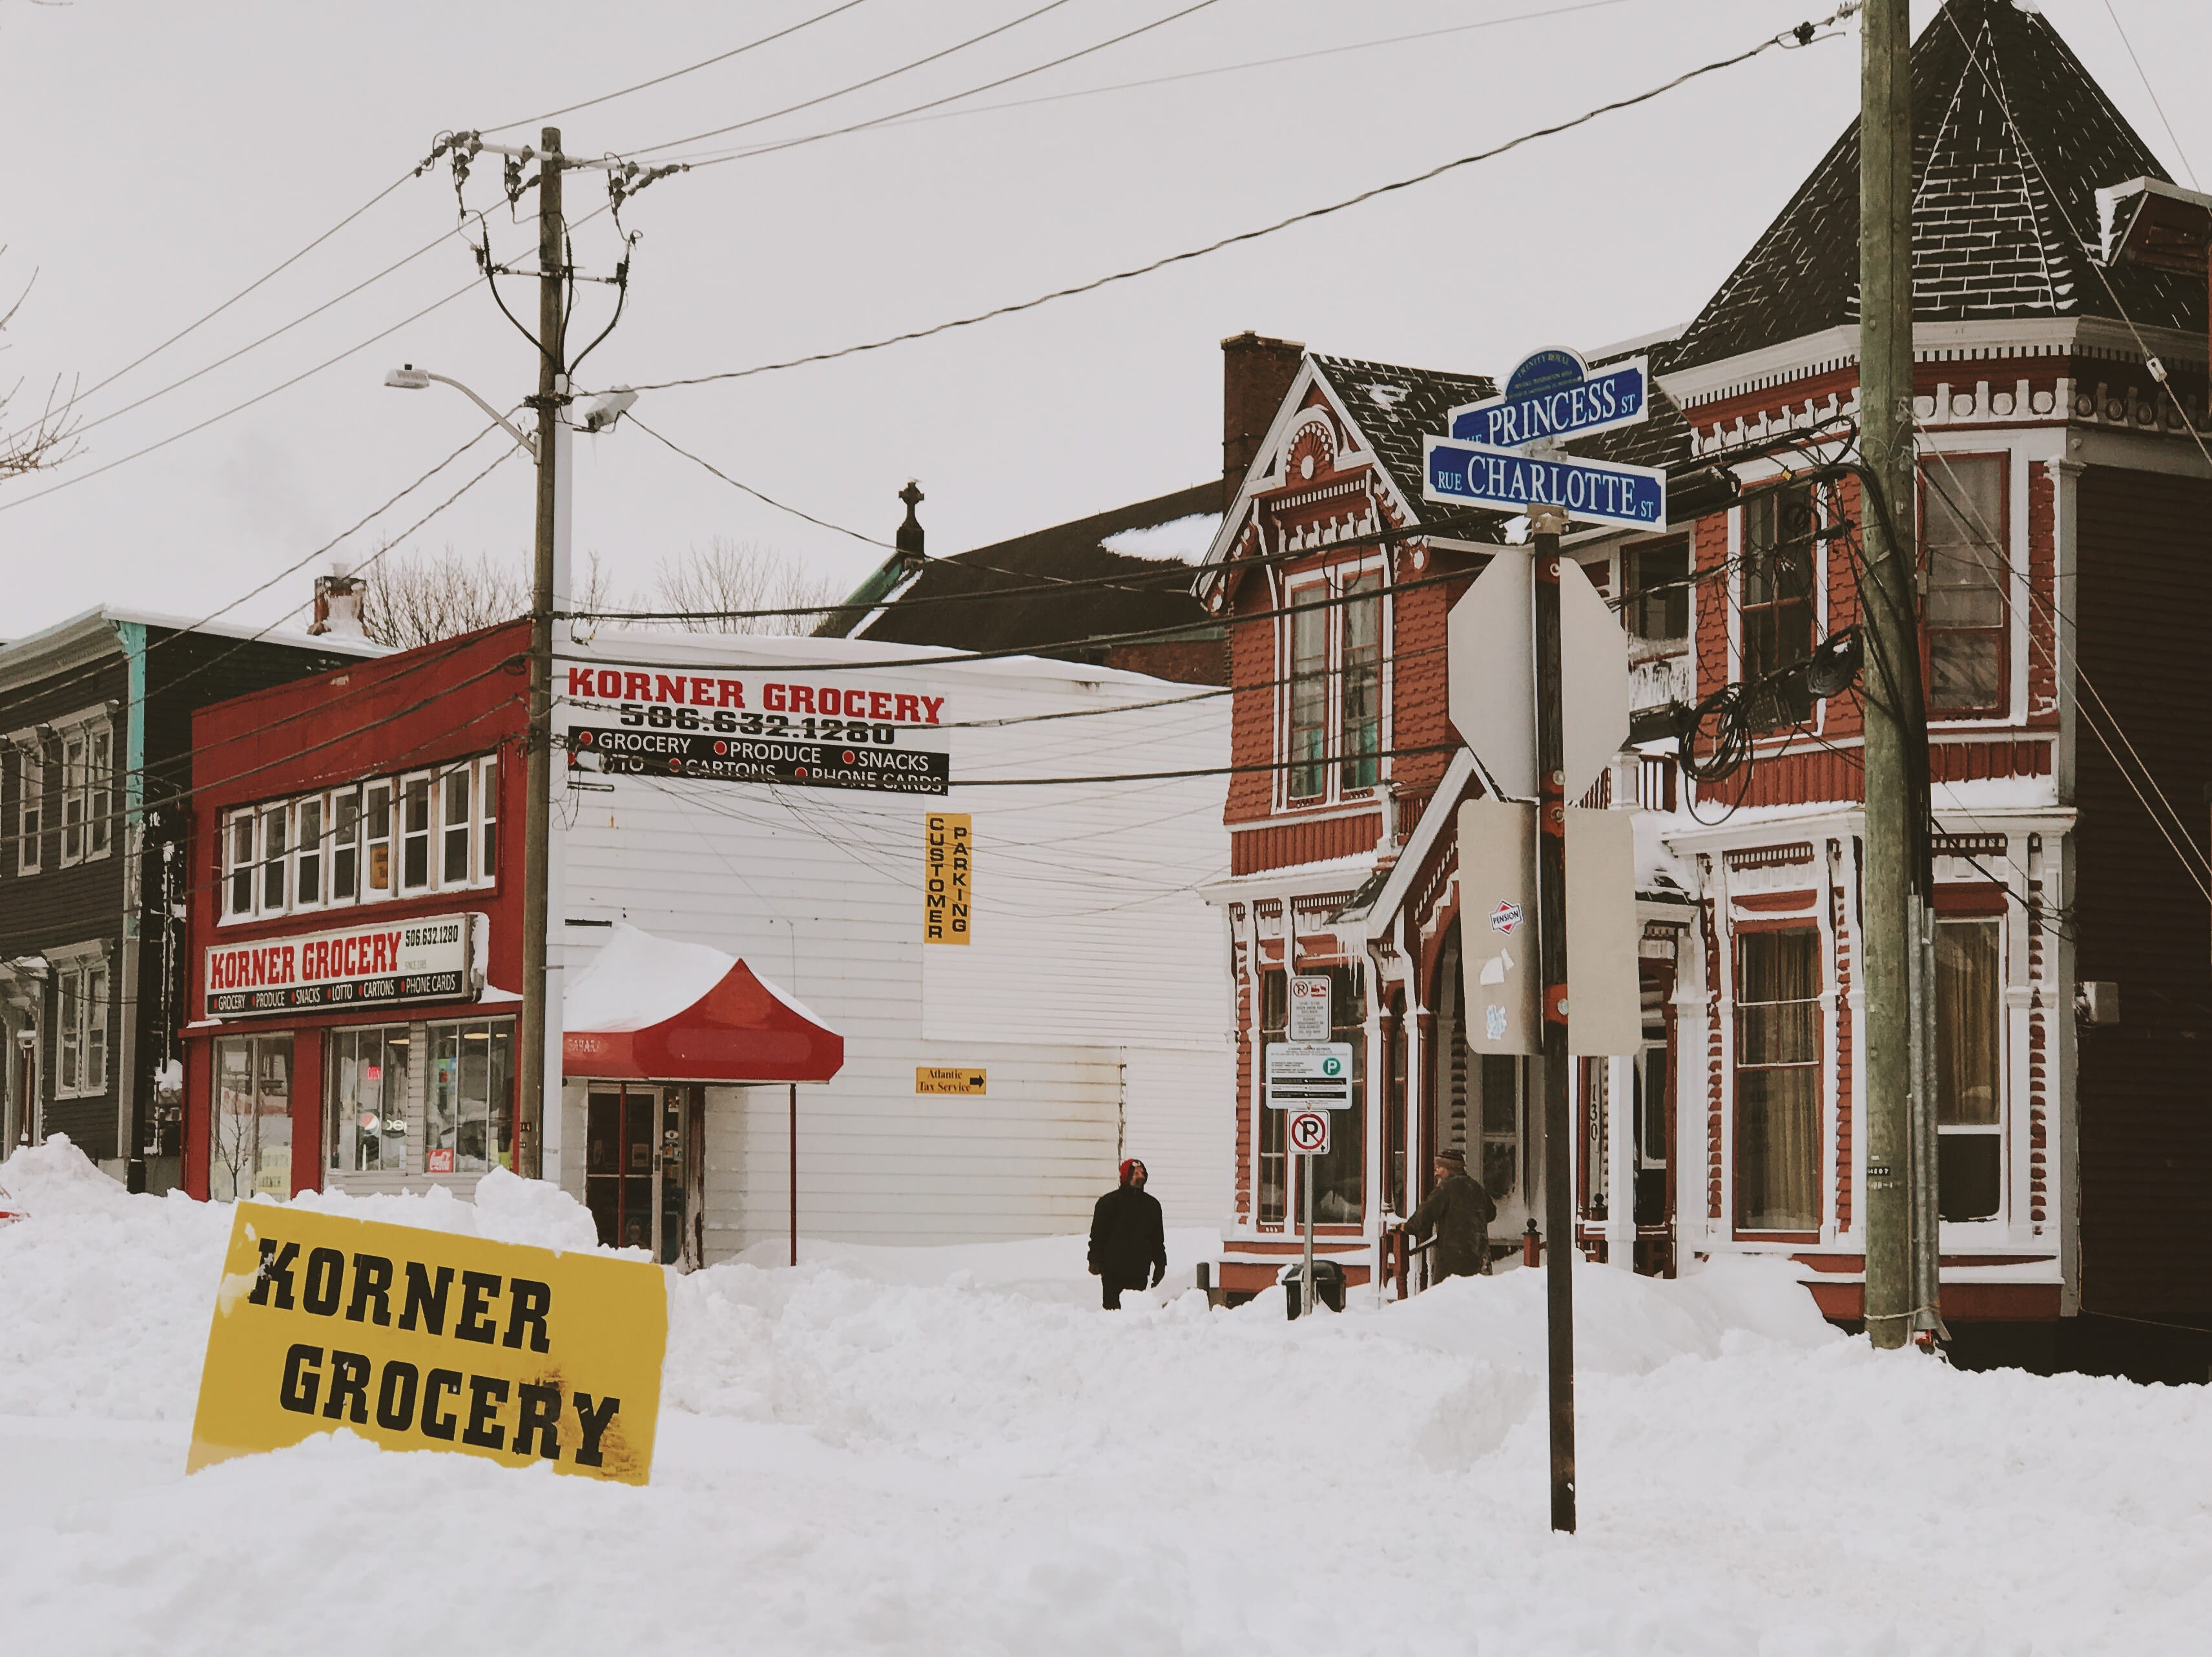 A photograph depicting Korner Grocery Intersection Snow